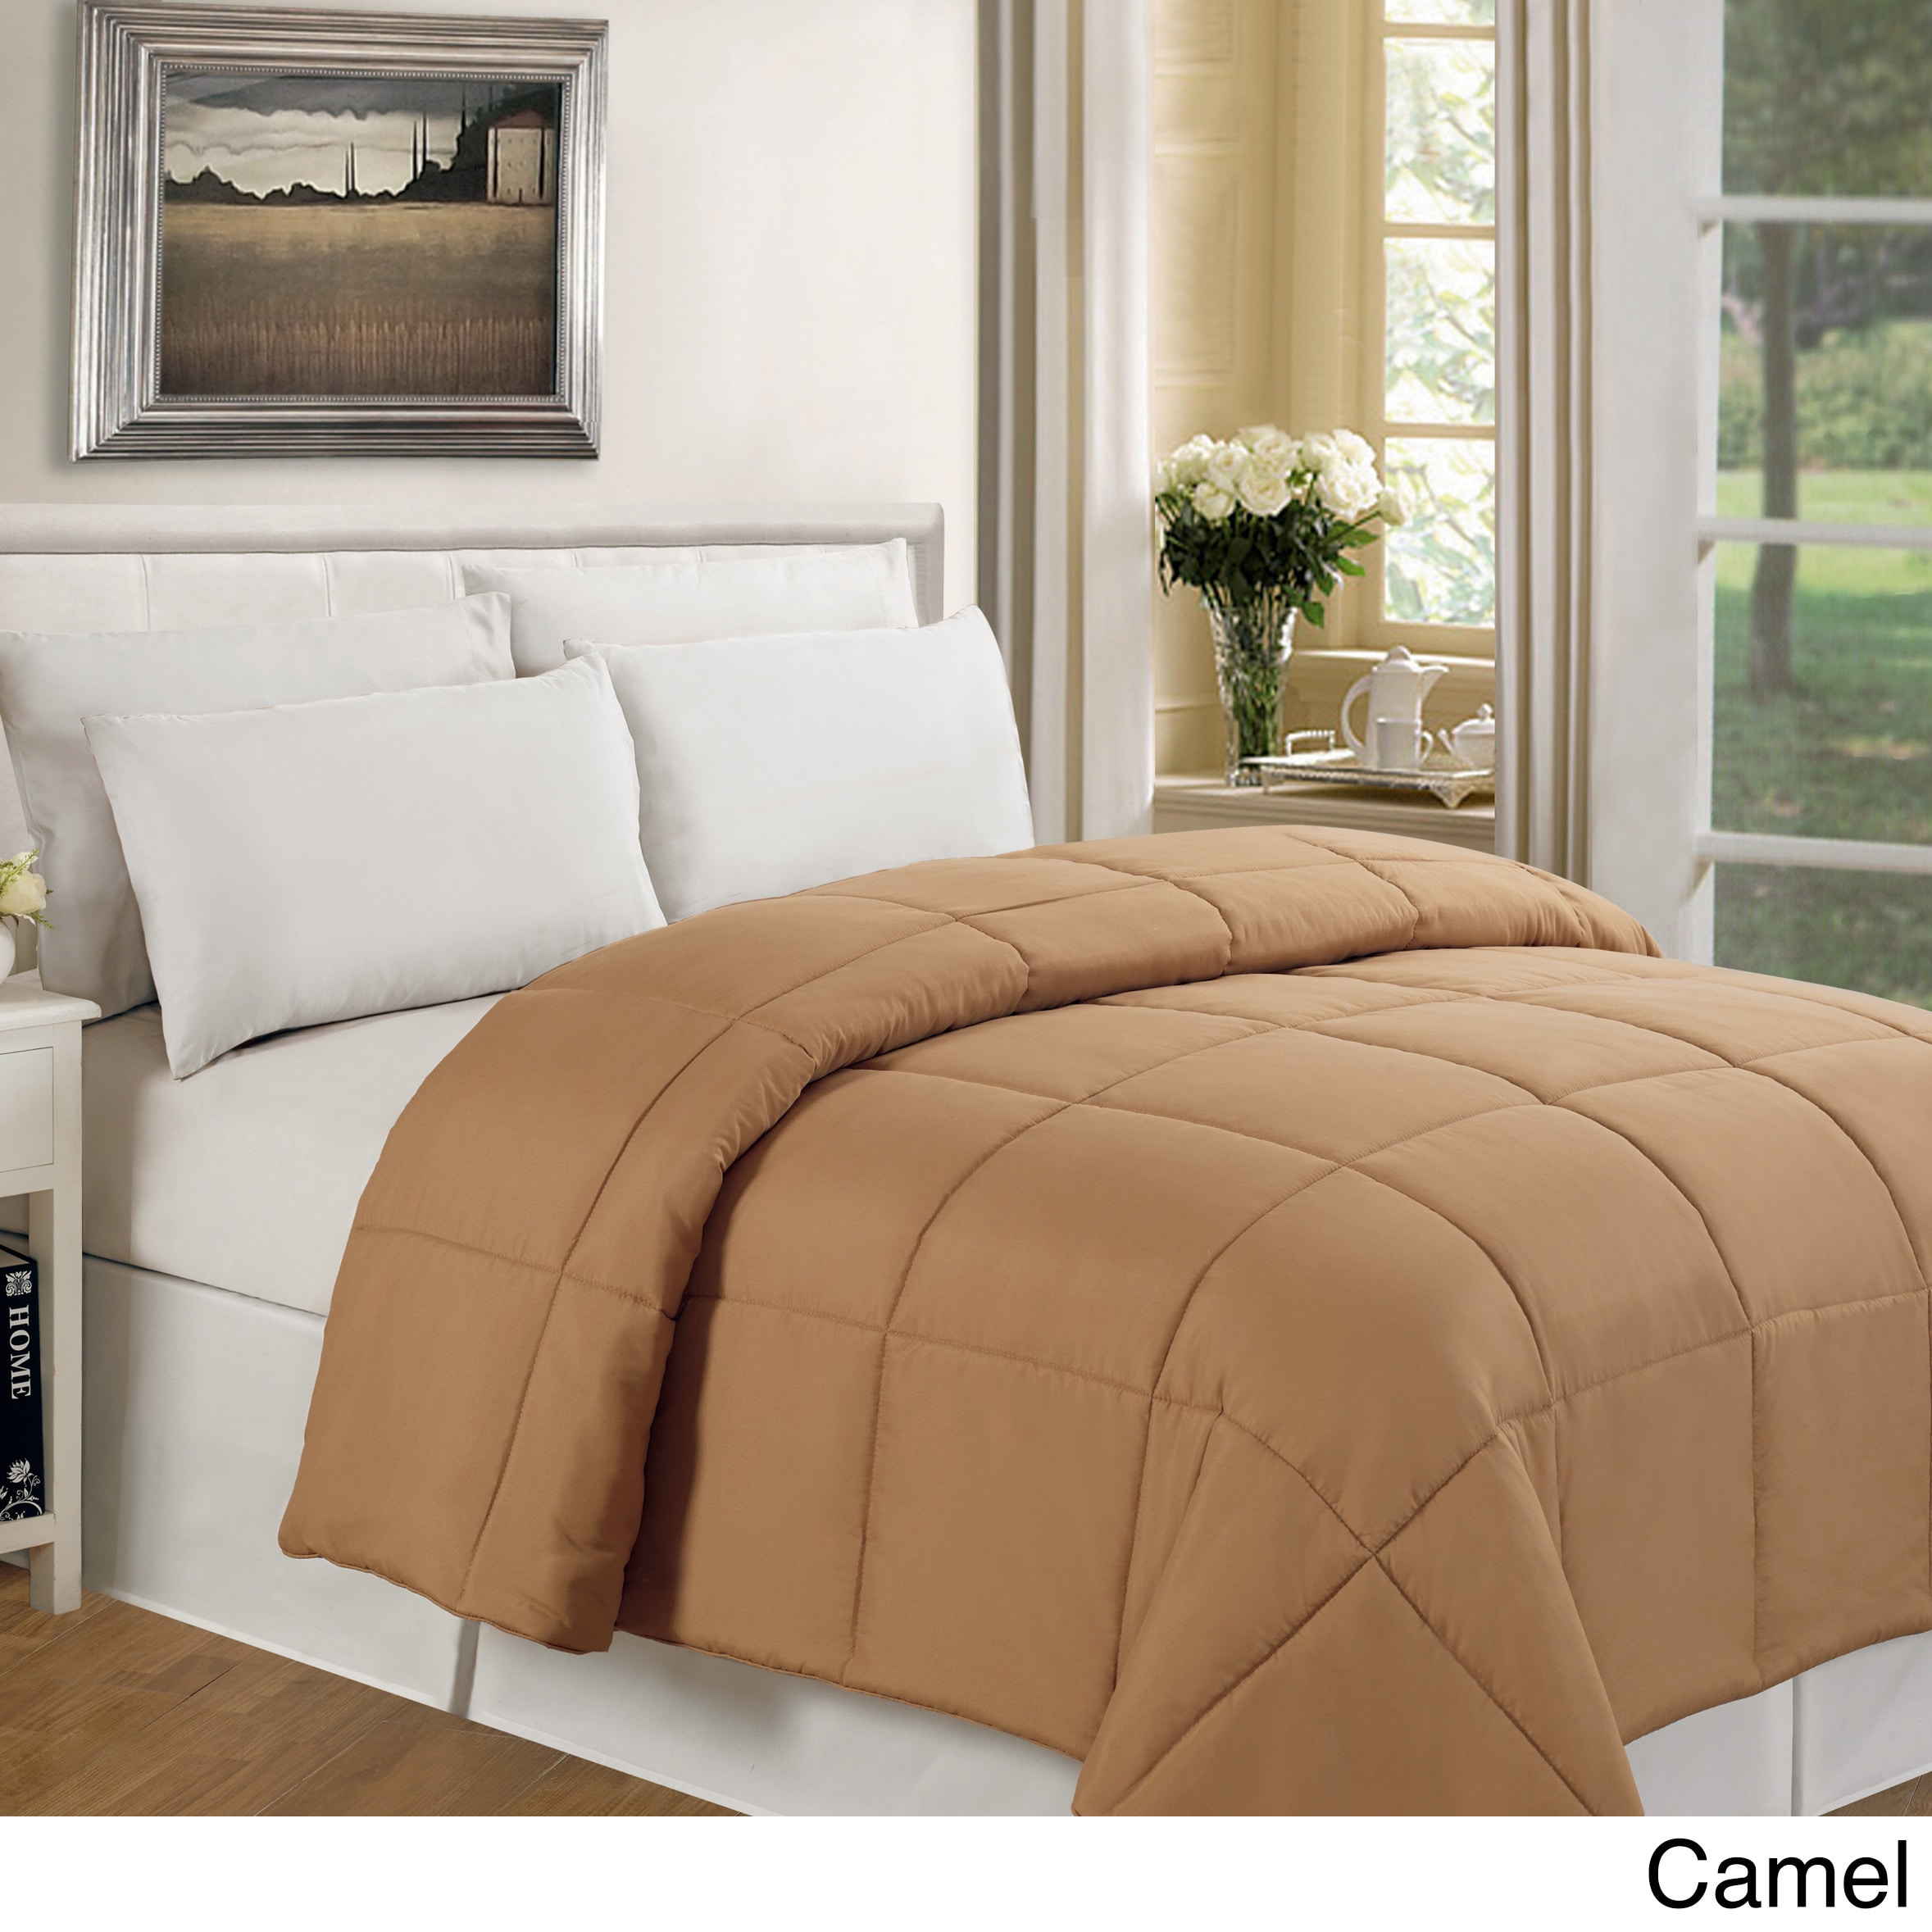 Richmond Home Twin Comforter in Ivory